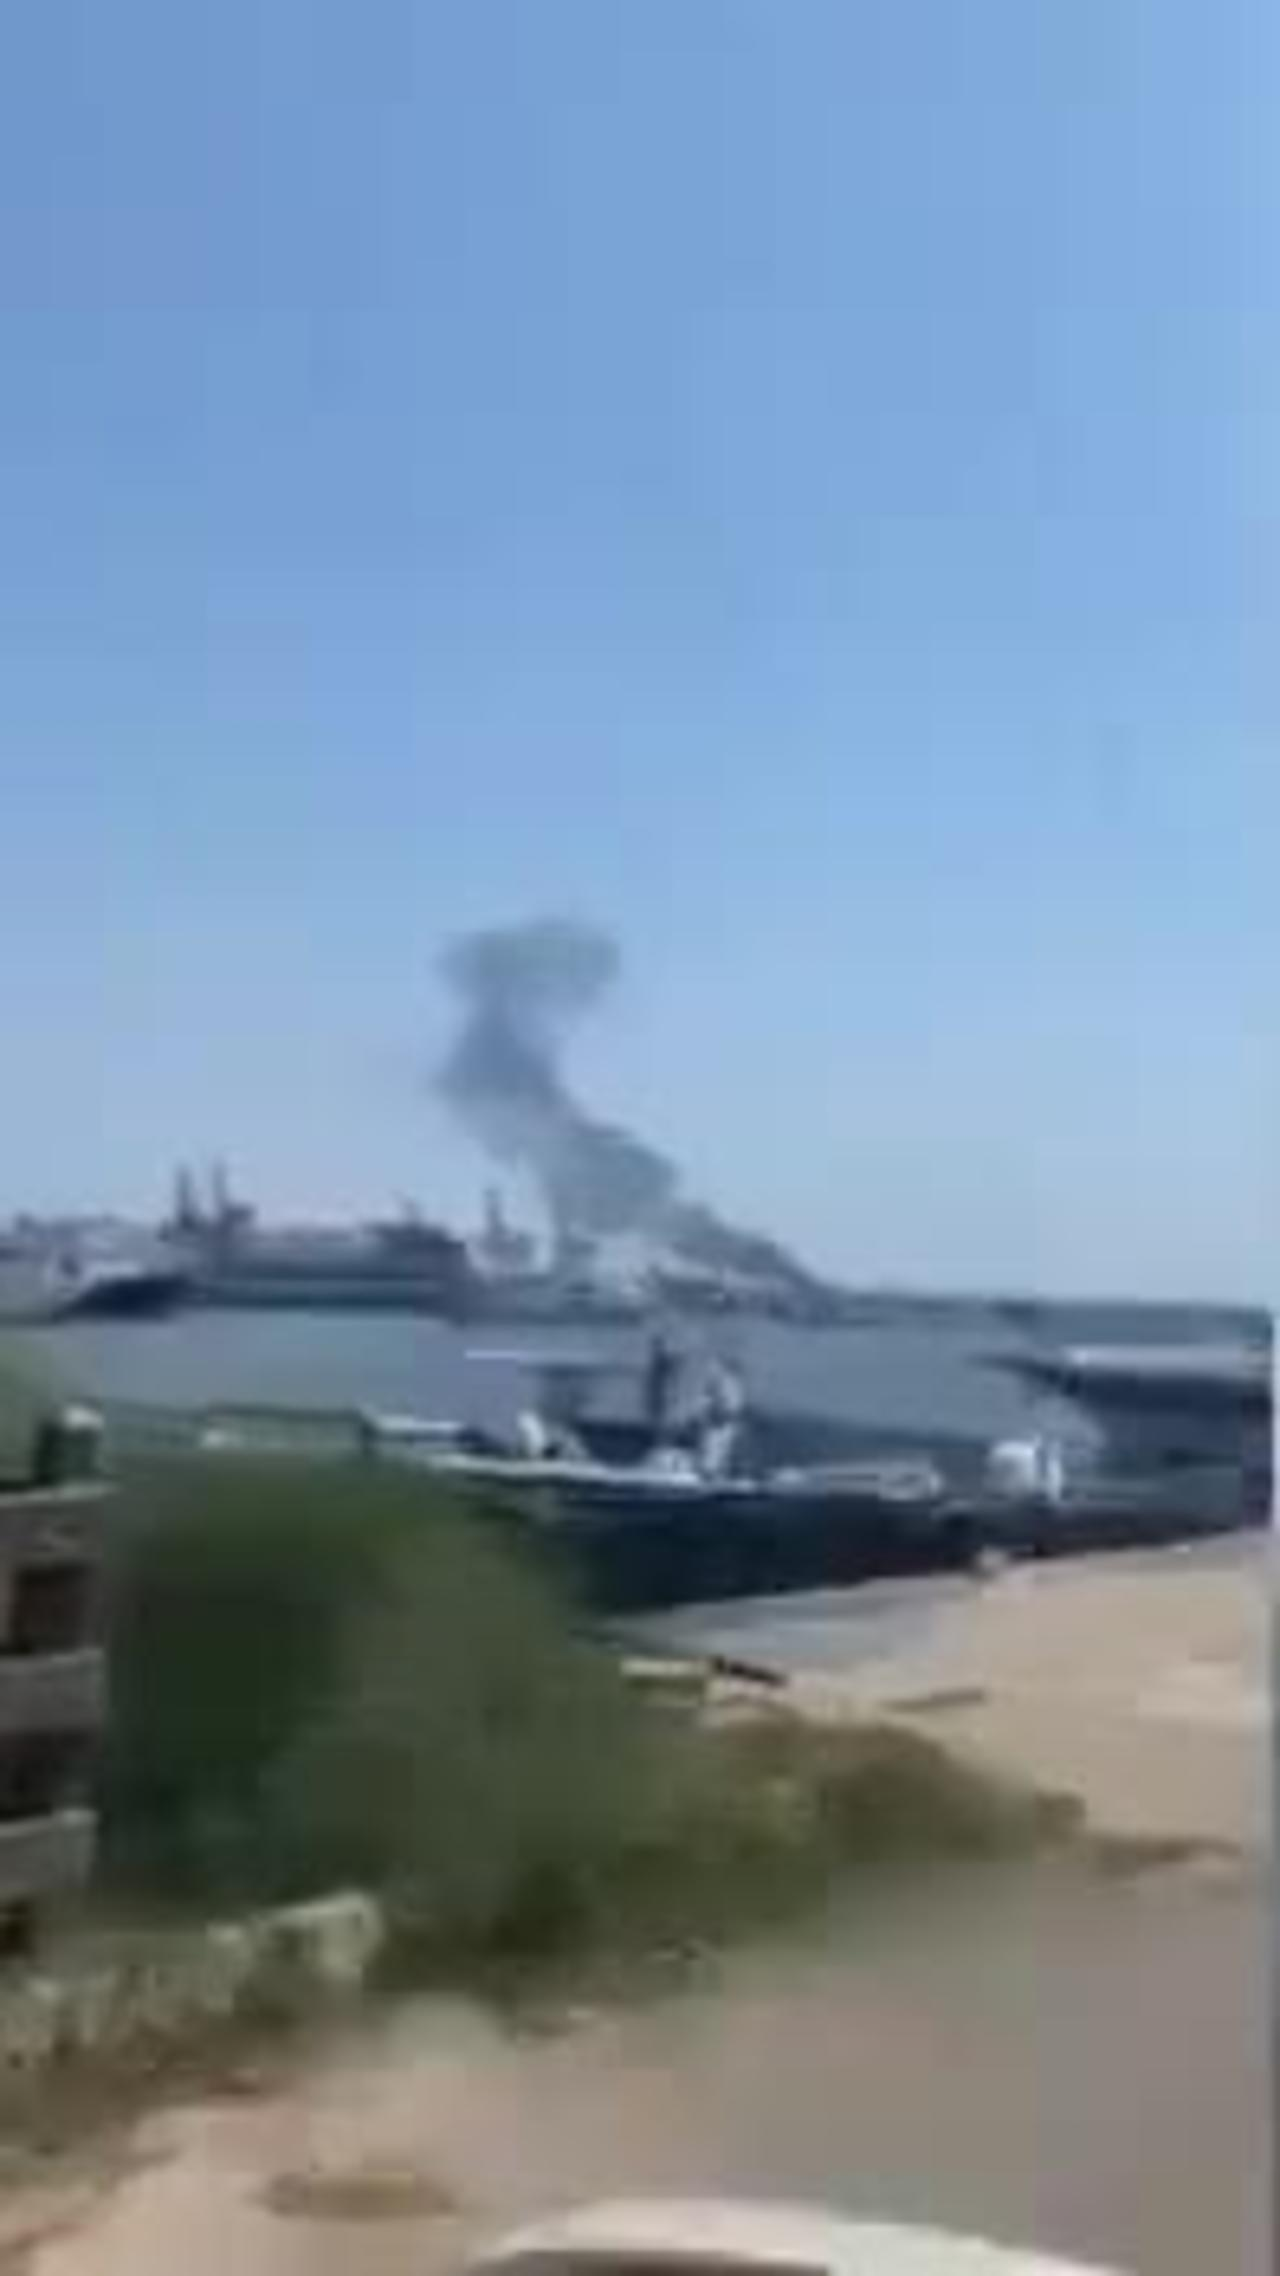 Explosion reported on Iran oil tanker at Syrian port, fire put out